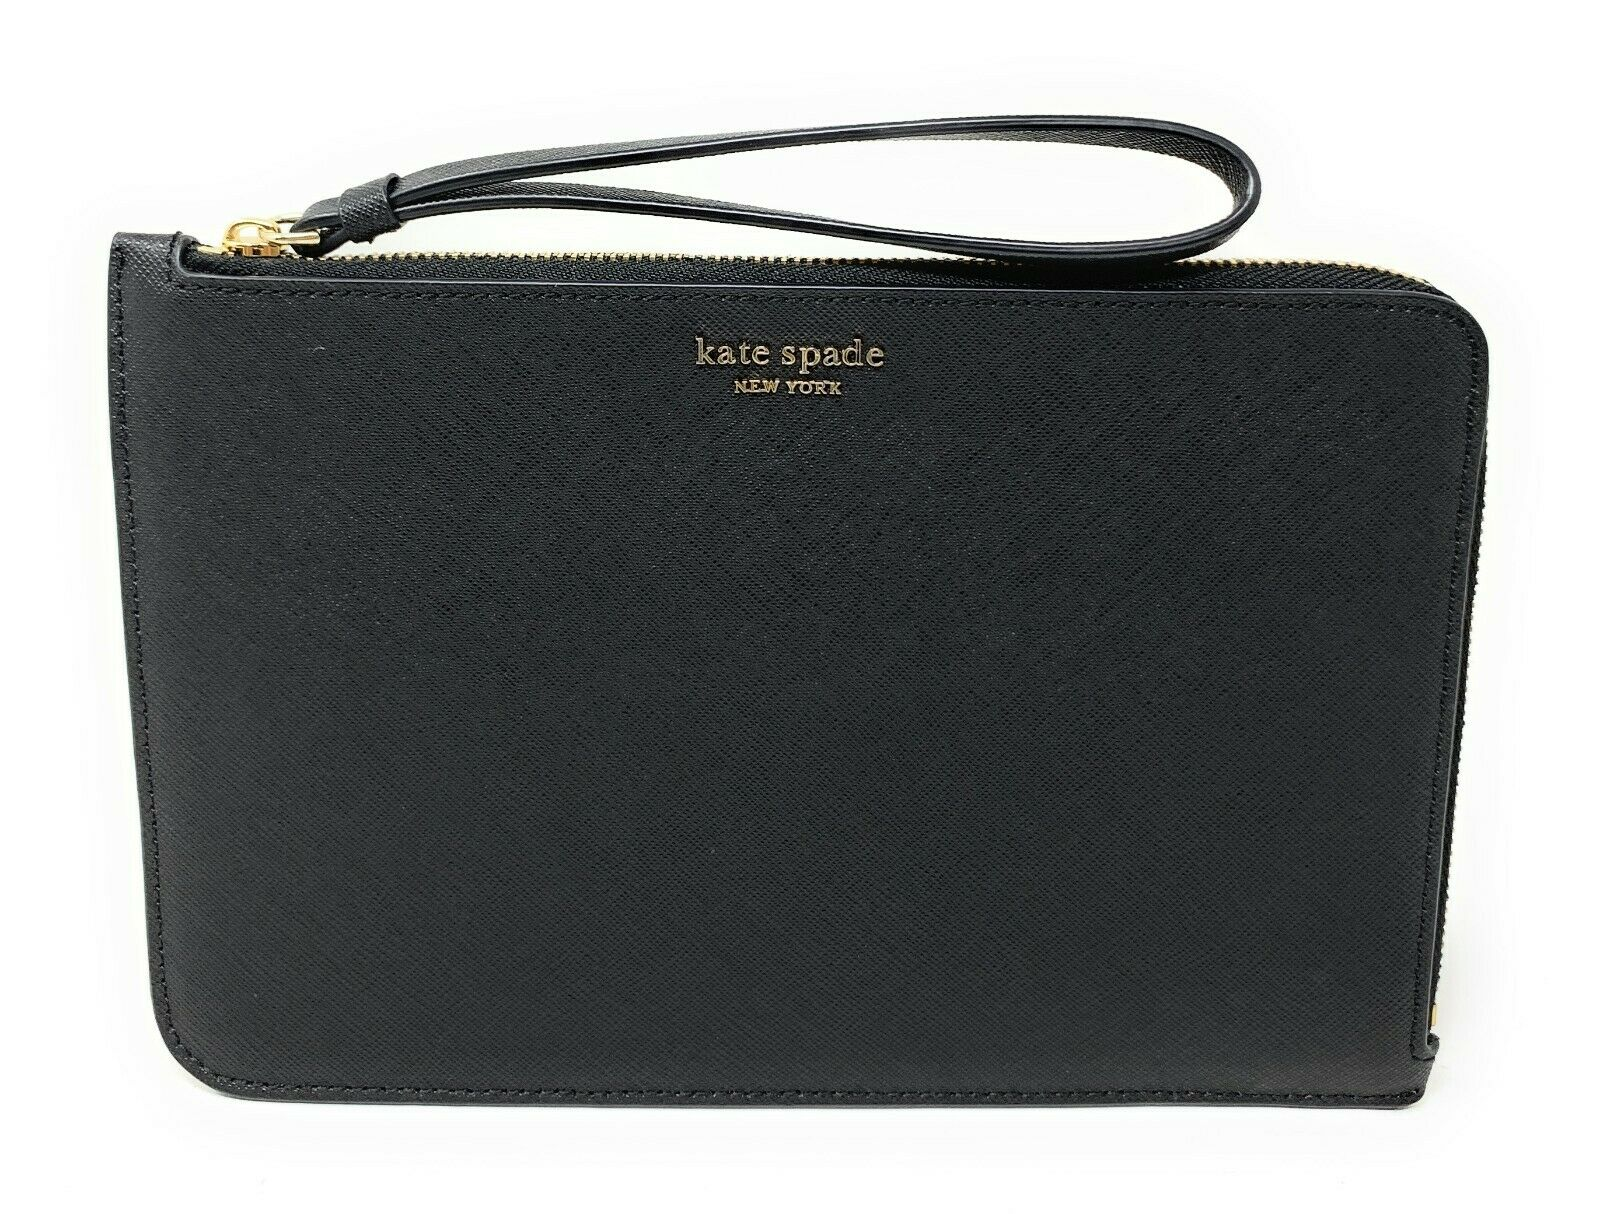 Kate Spade Cameron Large L-Zip Black Leather Wristlet WLRU5447